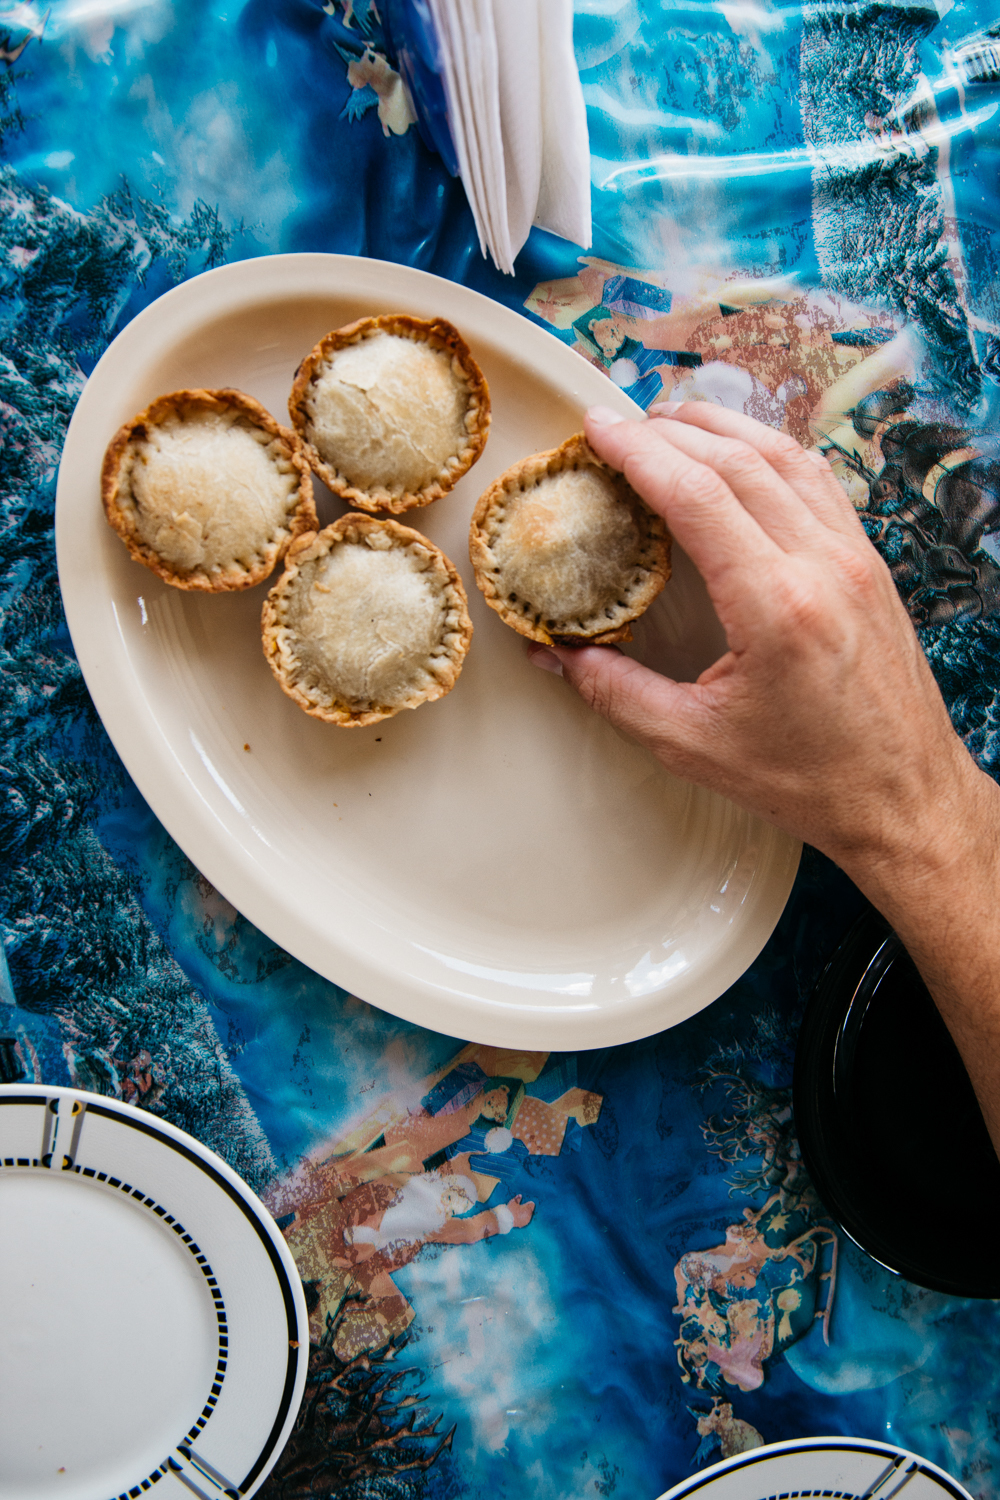 The best meat pies in Belize